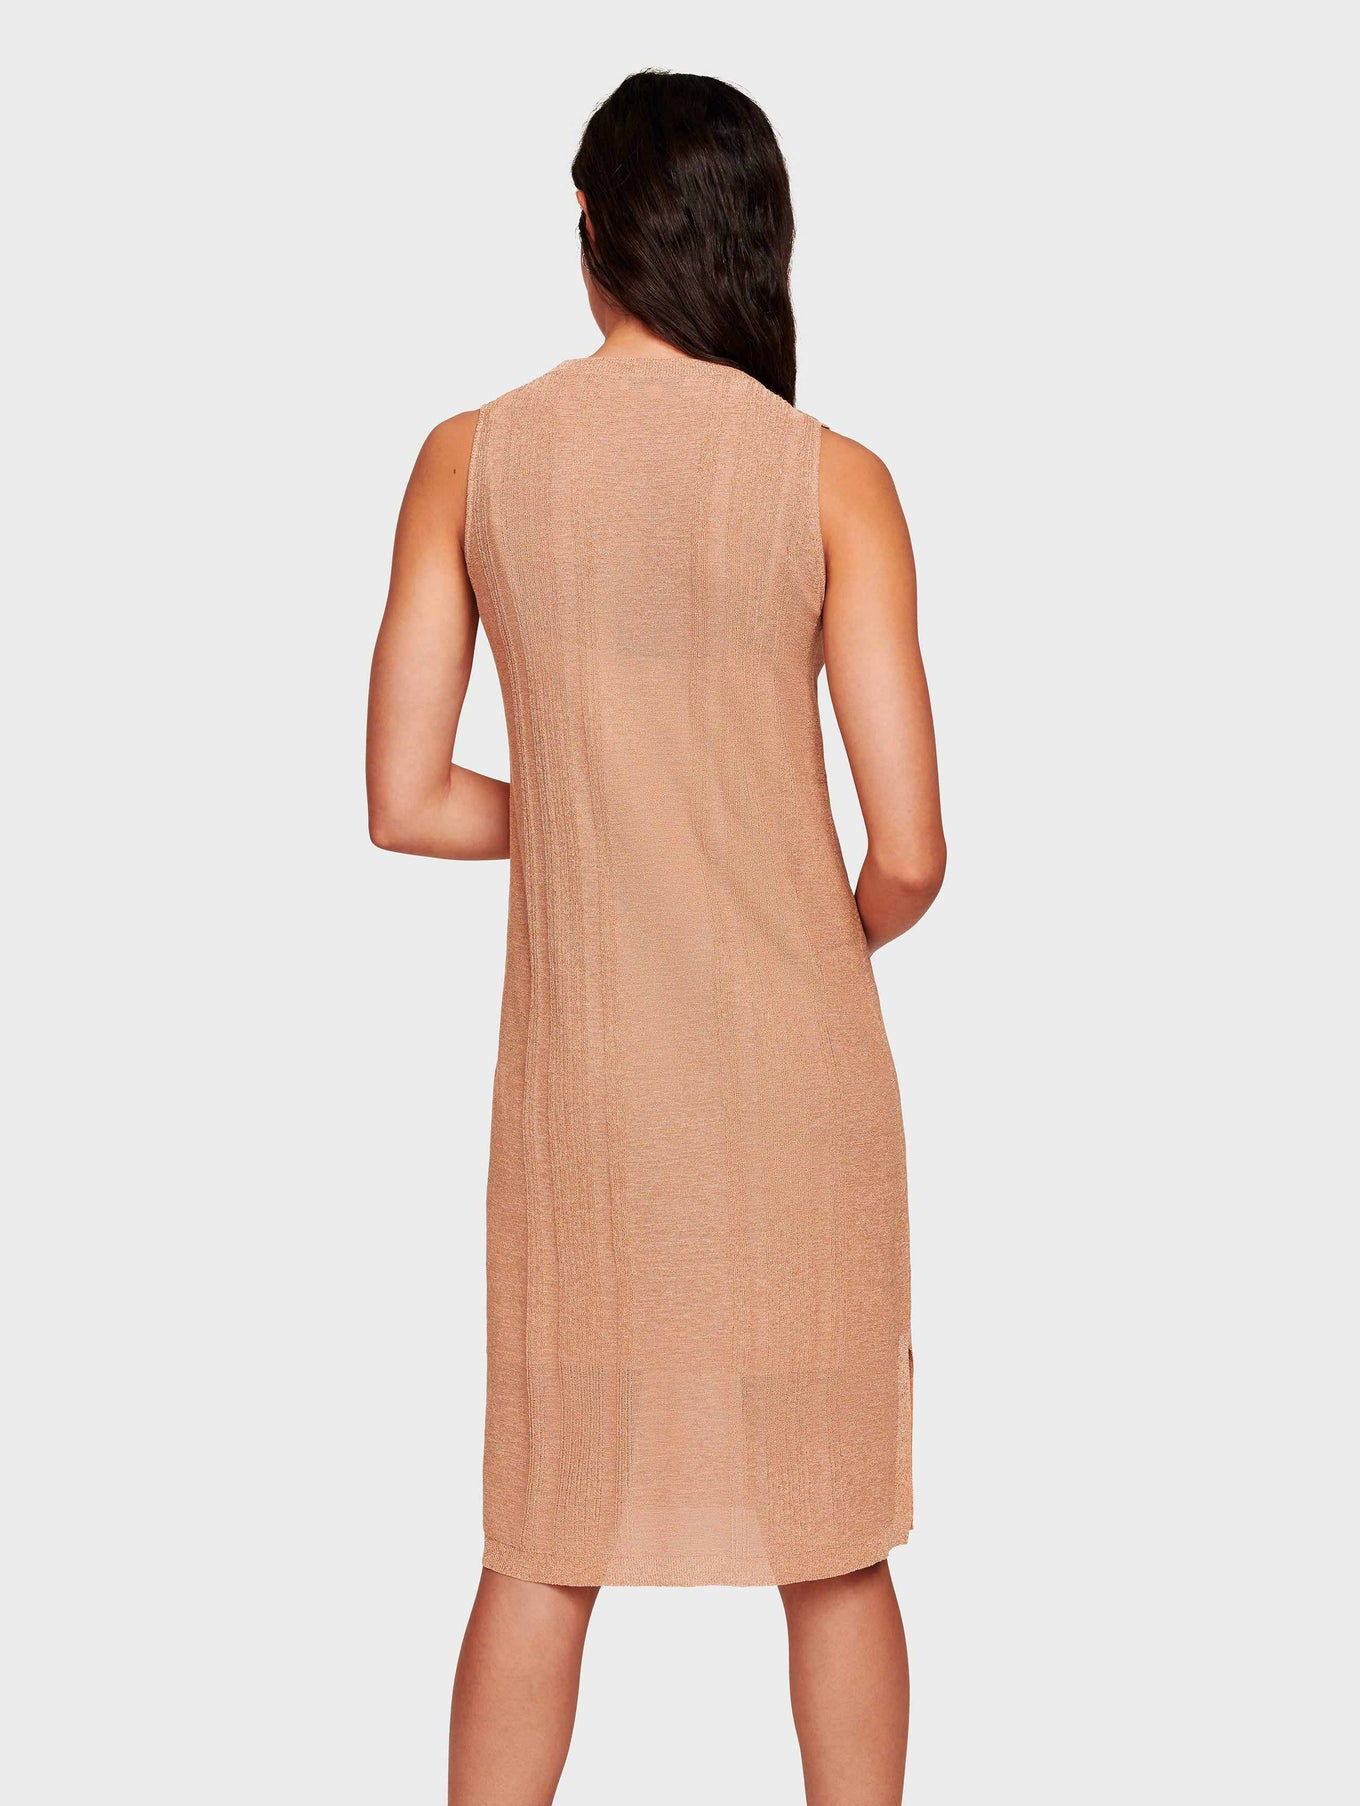 Italian Summer Shine Tank Dress - Golden Peach - Image 3